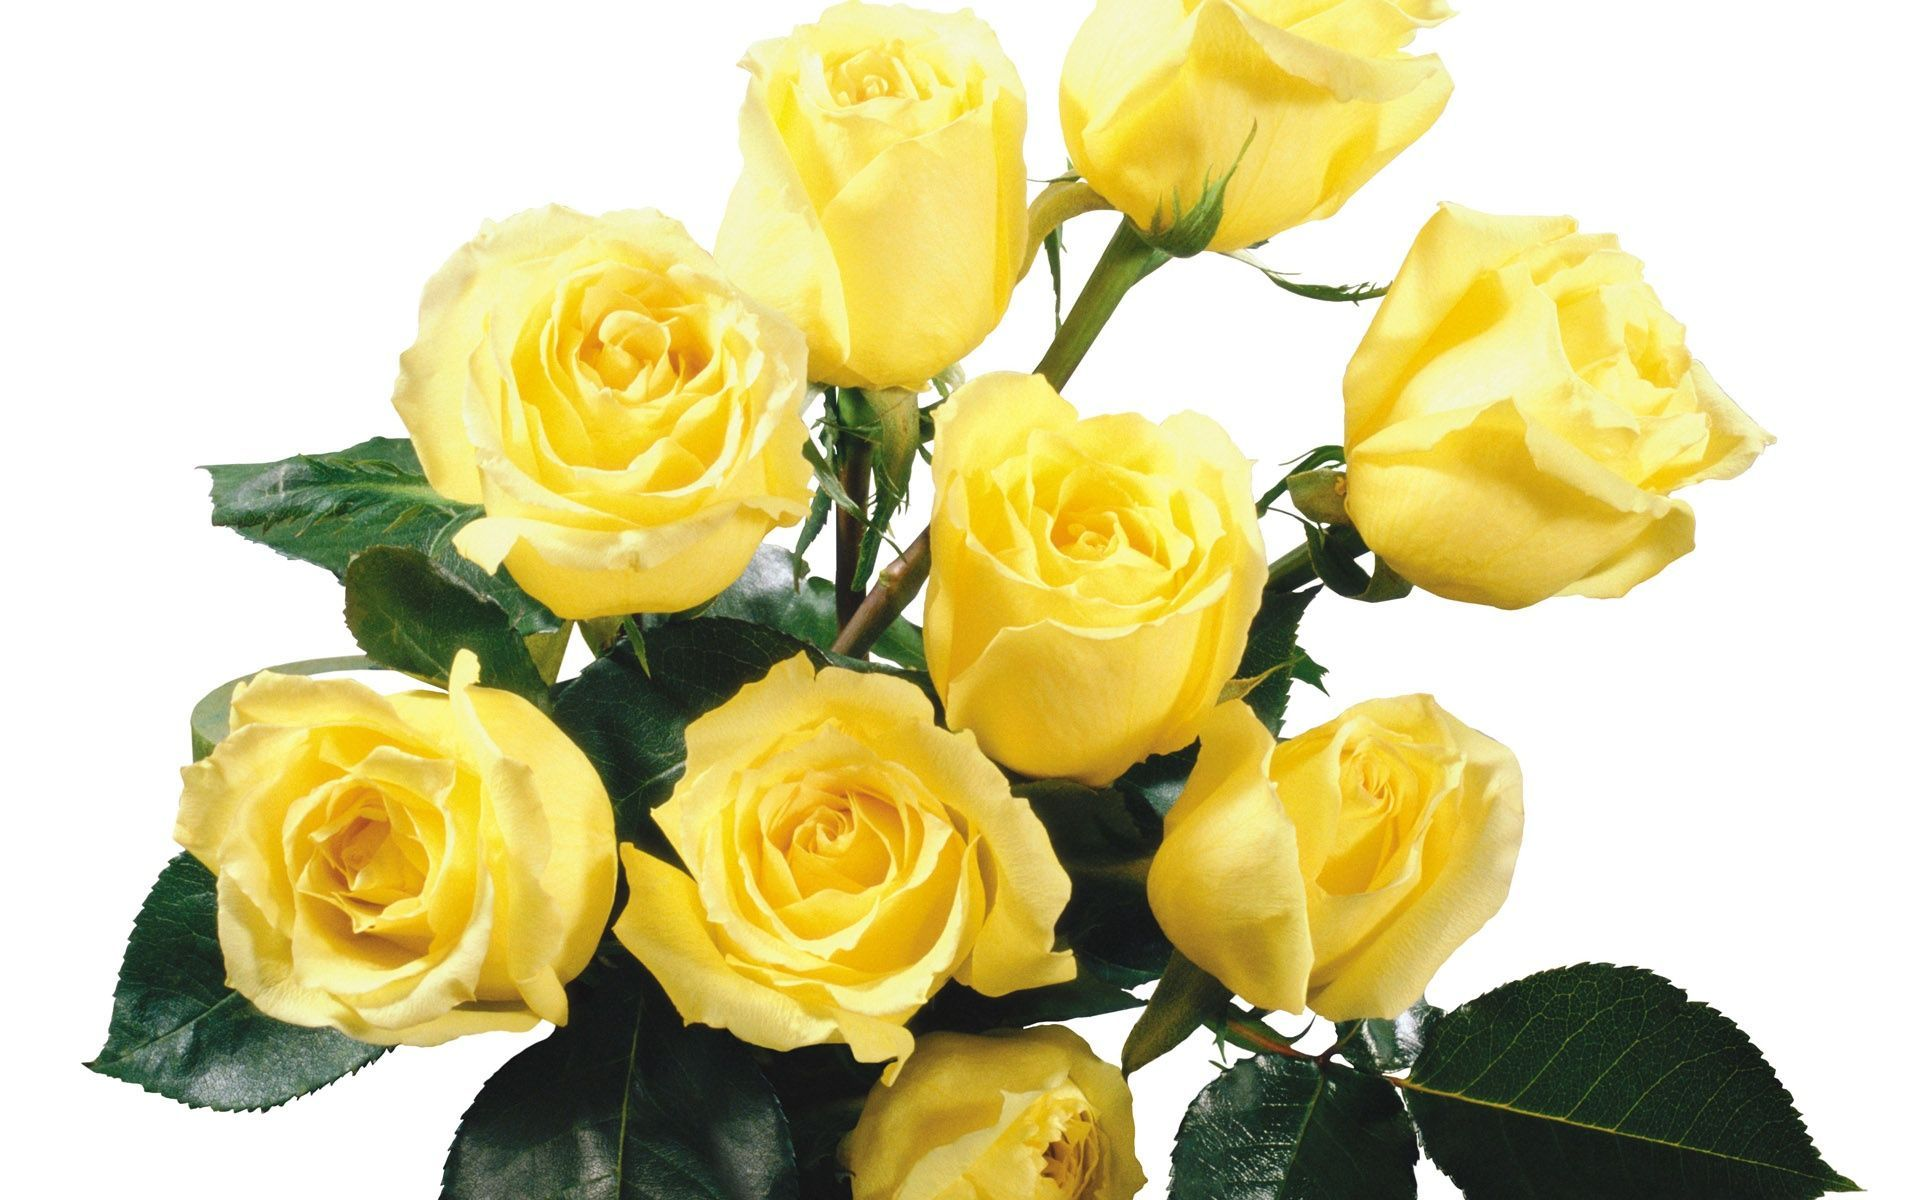 Yellow rose flower wallpapers wallpaper cave epic car wallpapers yellow rose flower wallpapers wallpaper cave mightylinksfo Choice Image